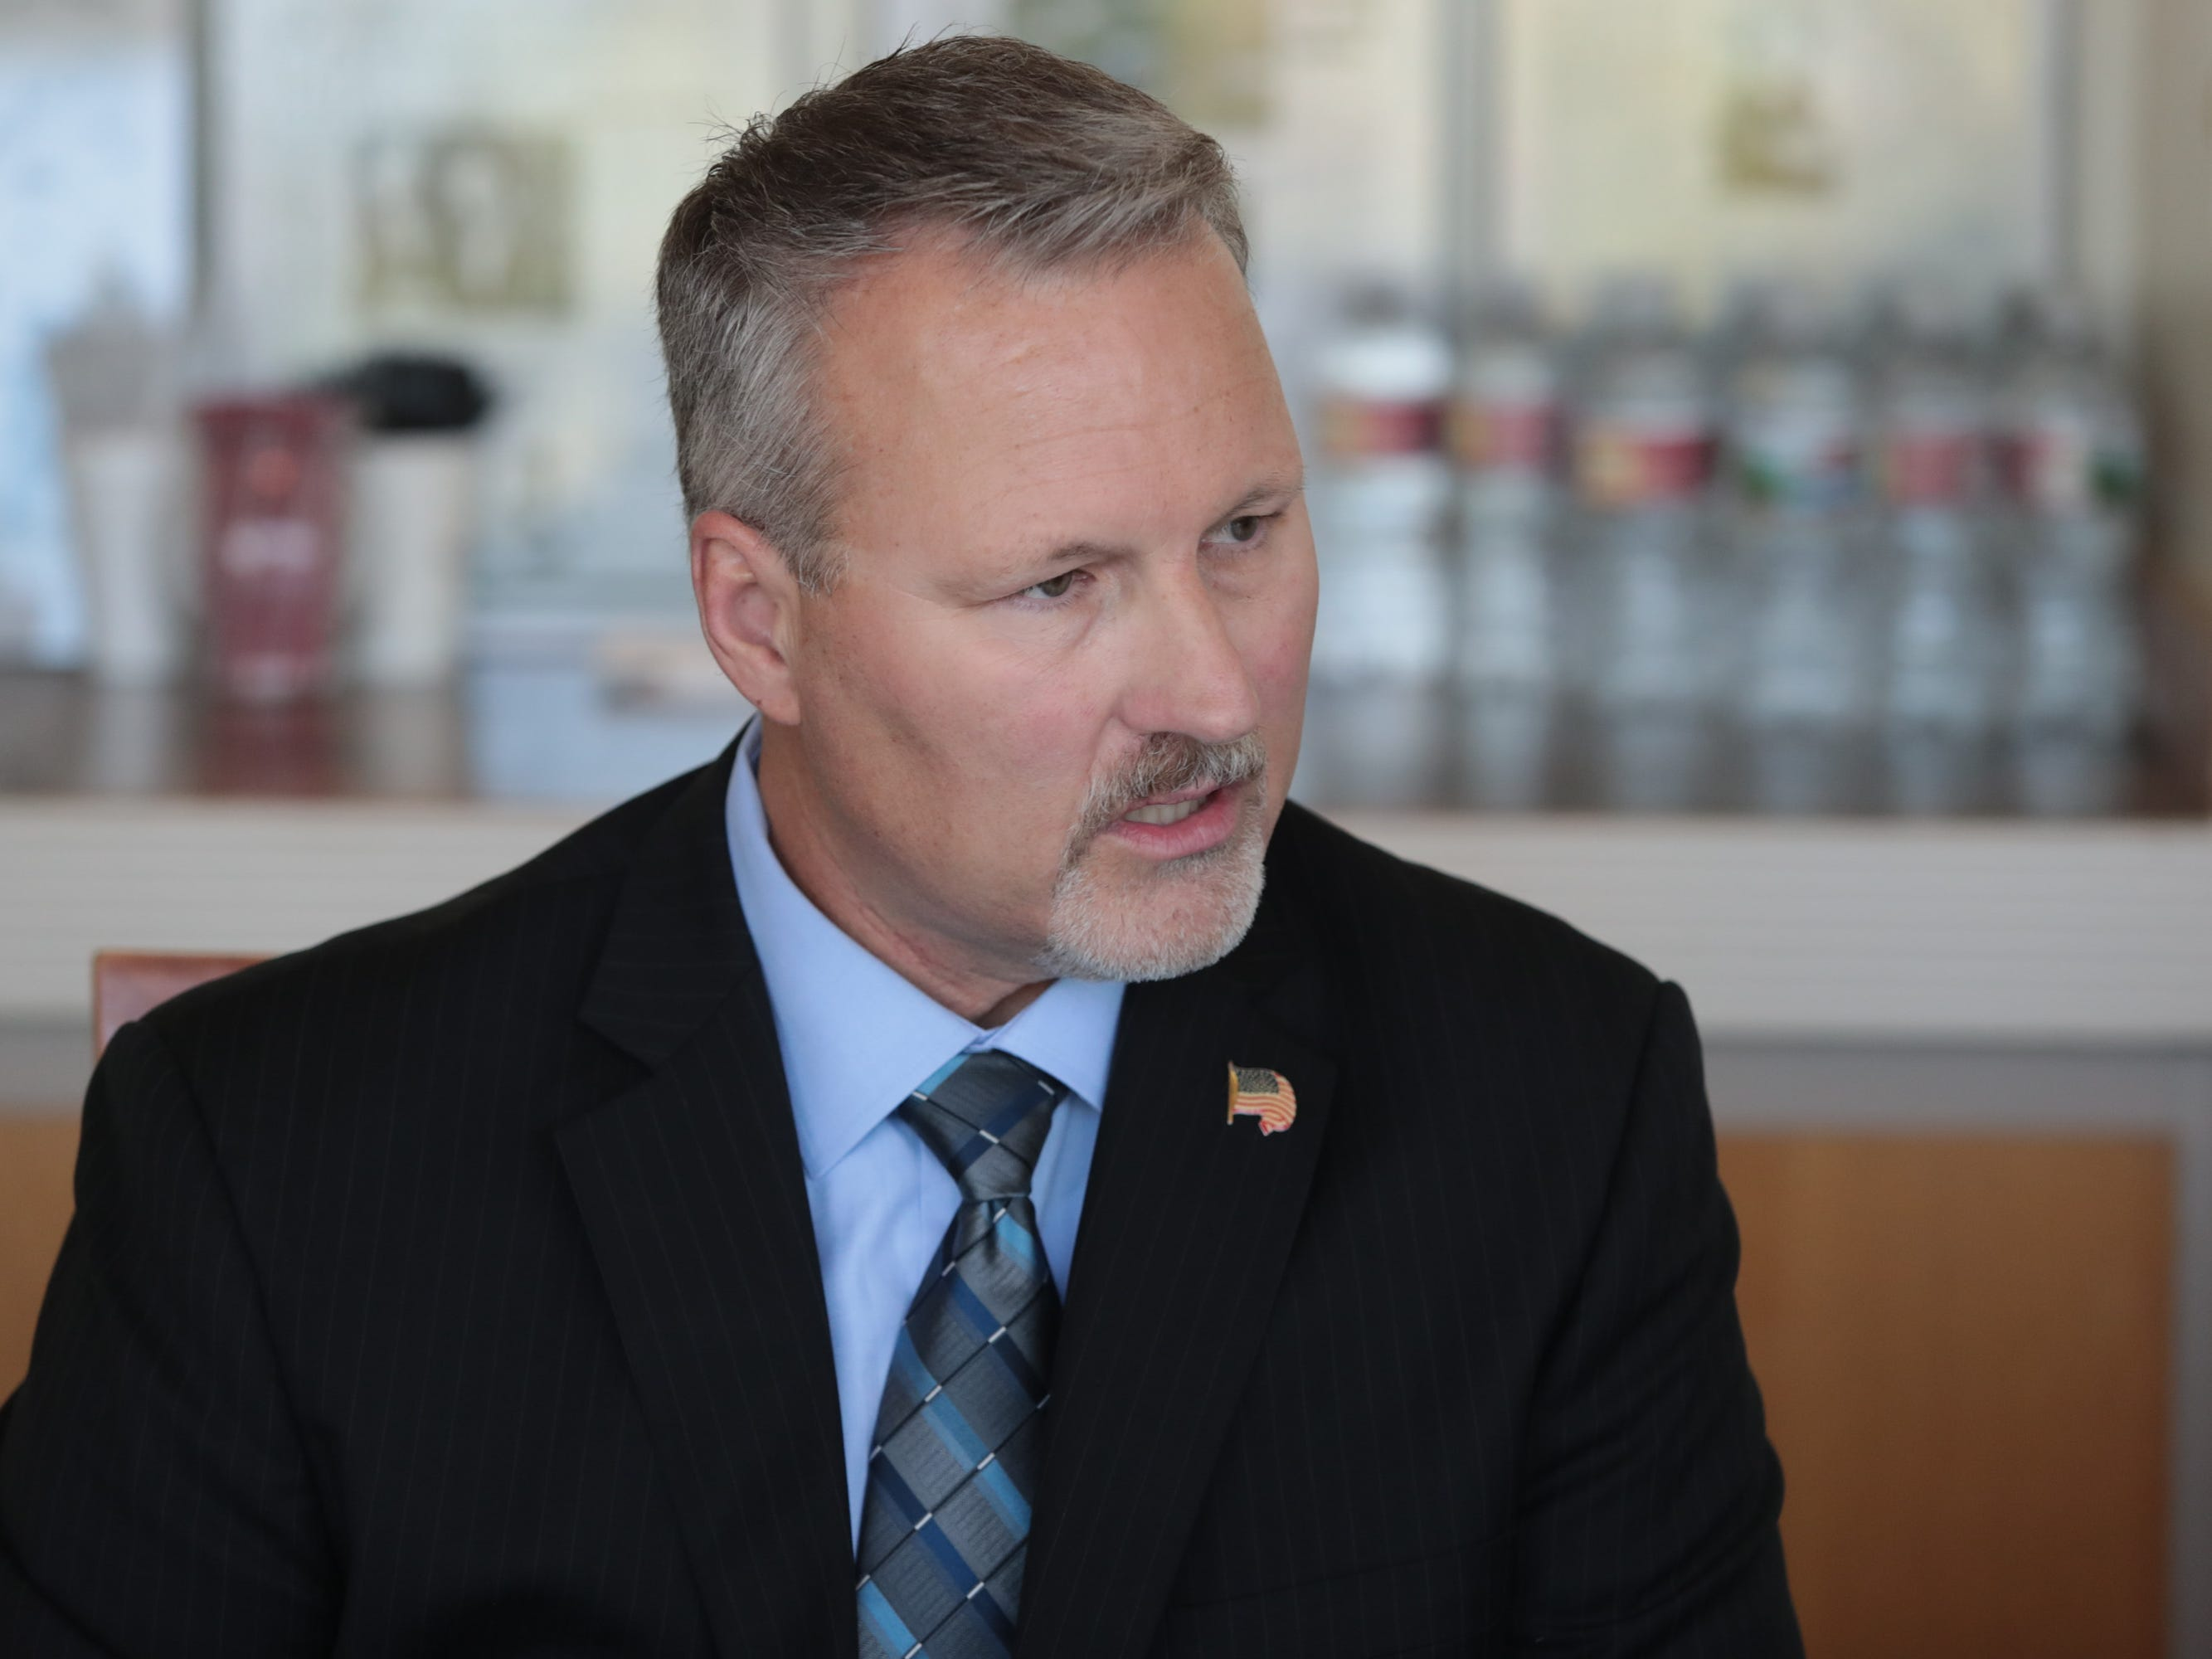 Down by 156 votes, Indio mayor considers recount; raises unsupported claims of 'ballot harvesting'